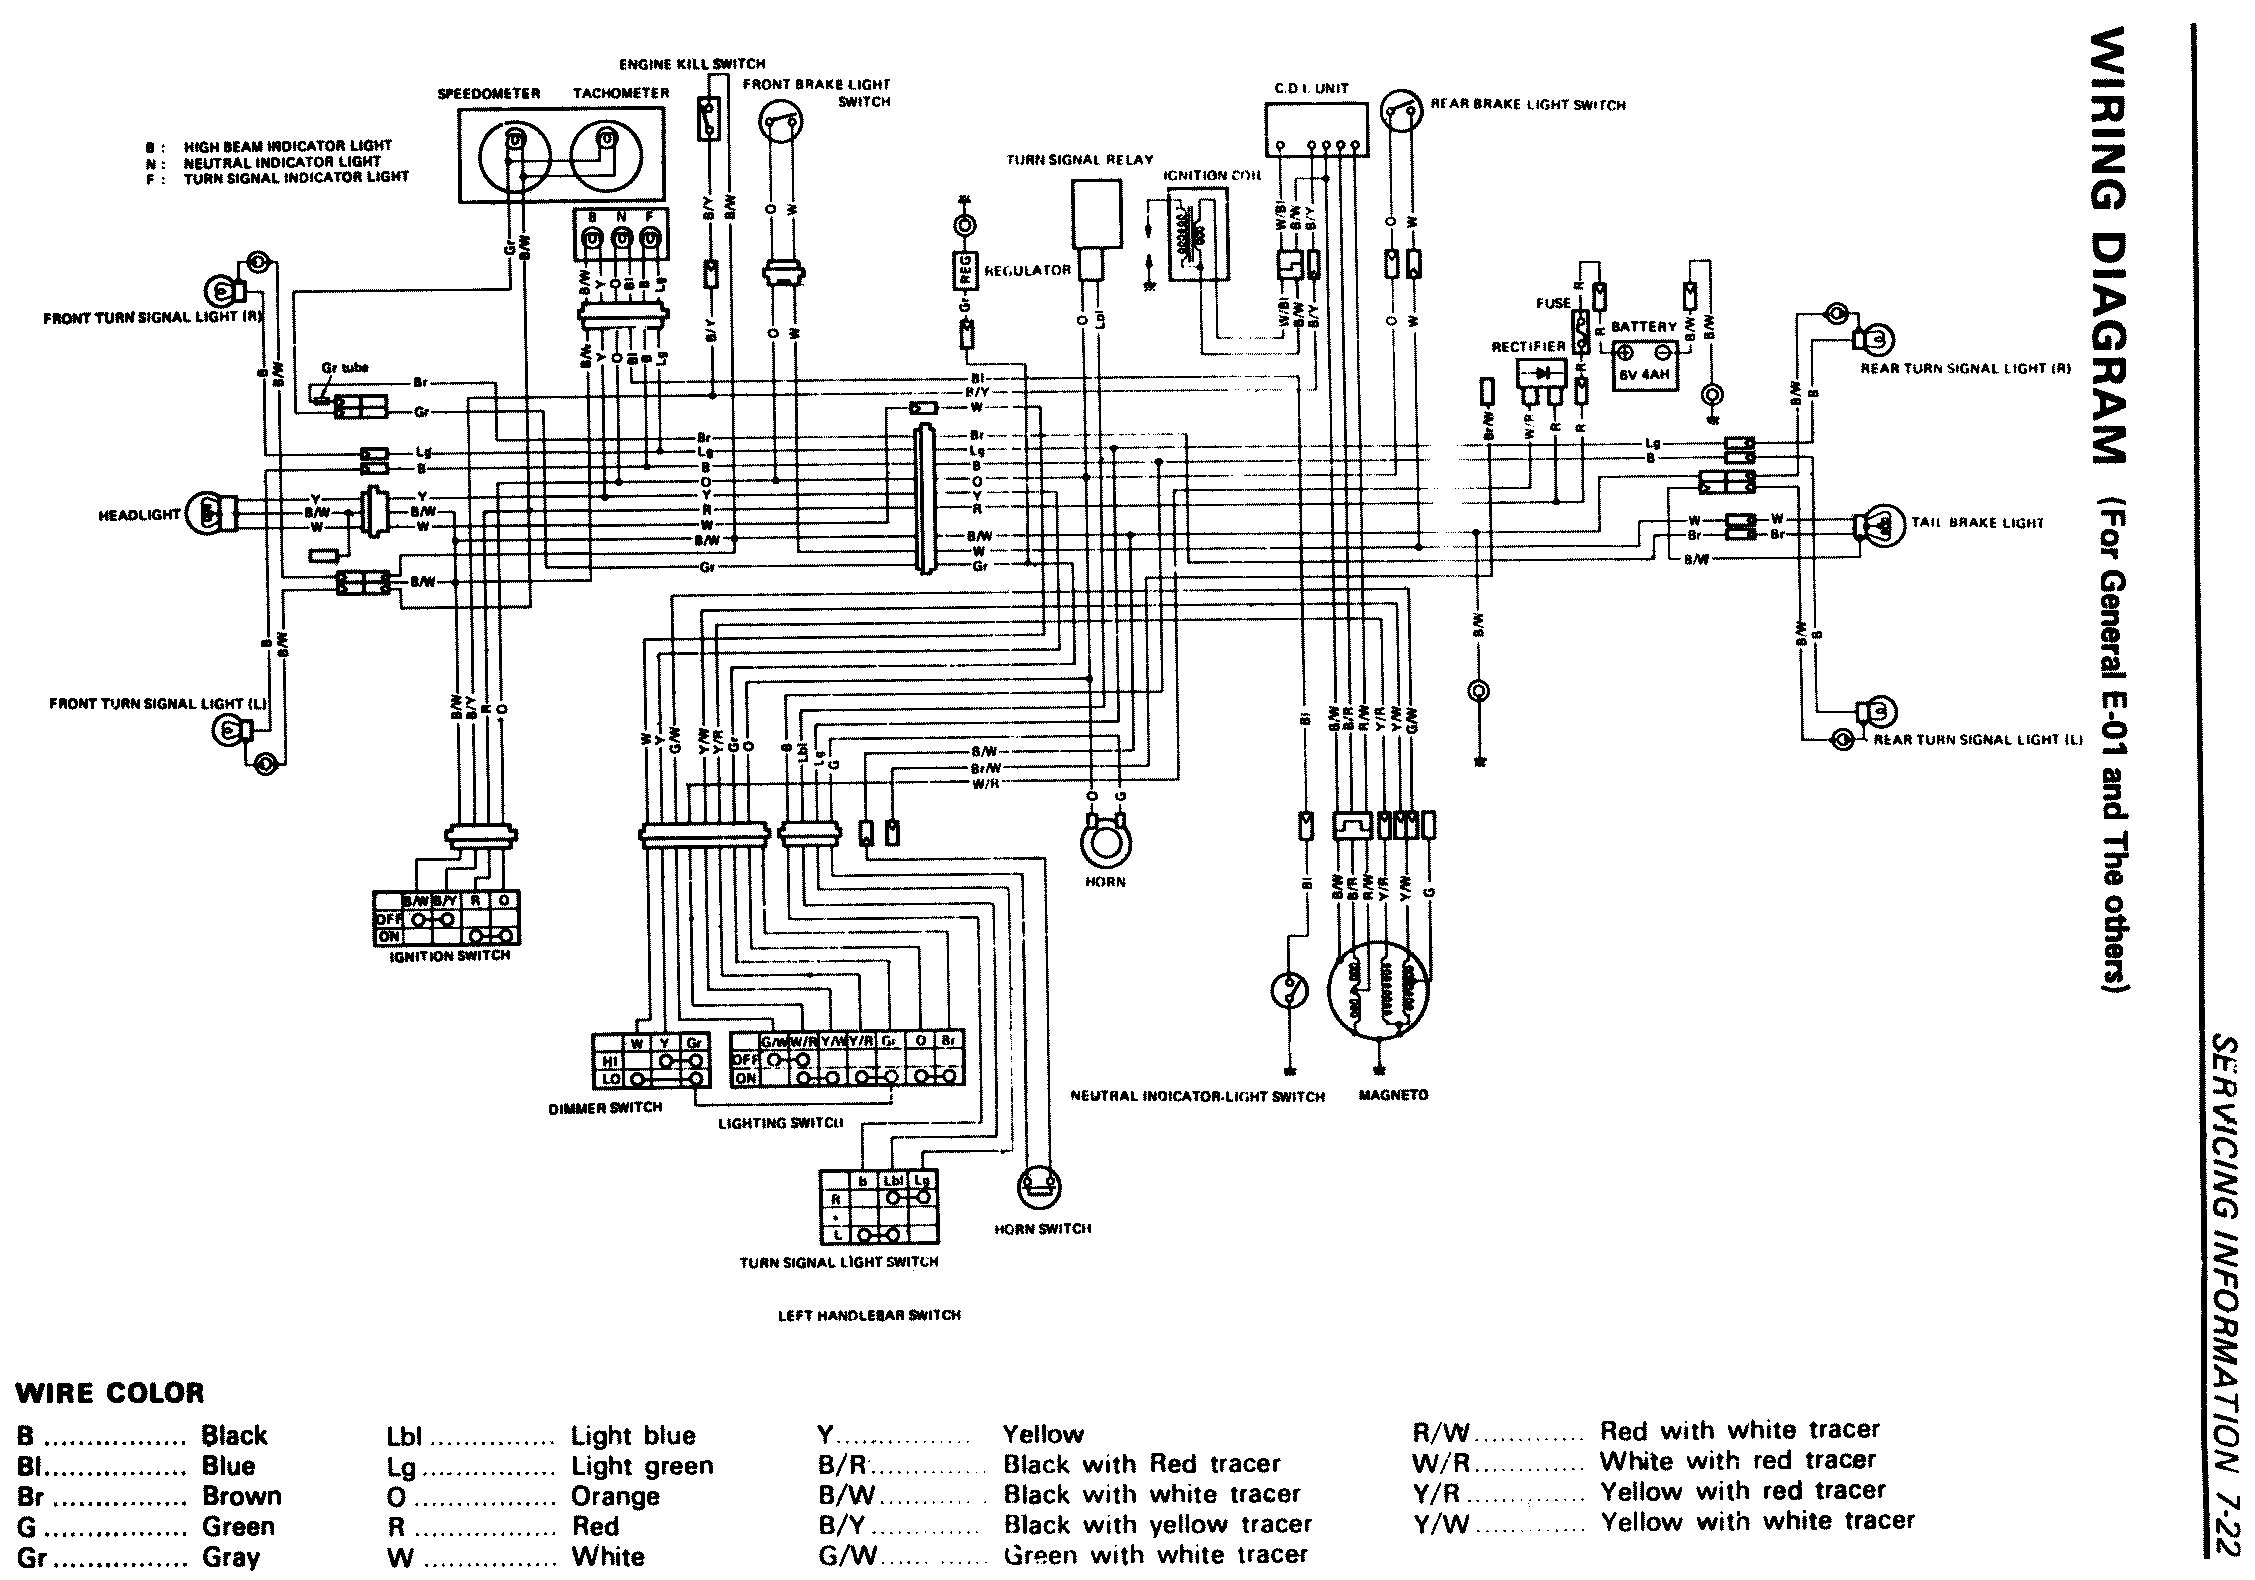 suzuki gs850g wiring diagram wiring diagram1980 suzuki gs850 wiring diagram wiring diagram automotive1982 suzuki gs850 wiring diagram 3 bbh zionsnowboards de